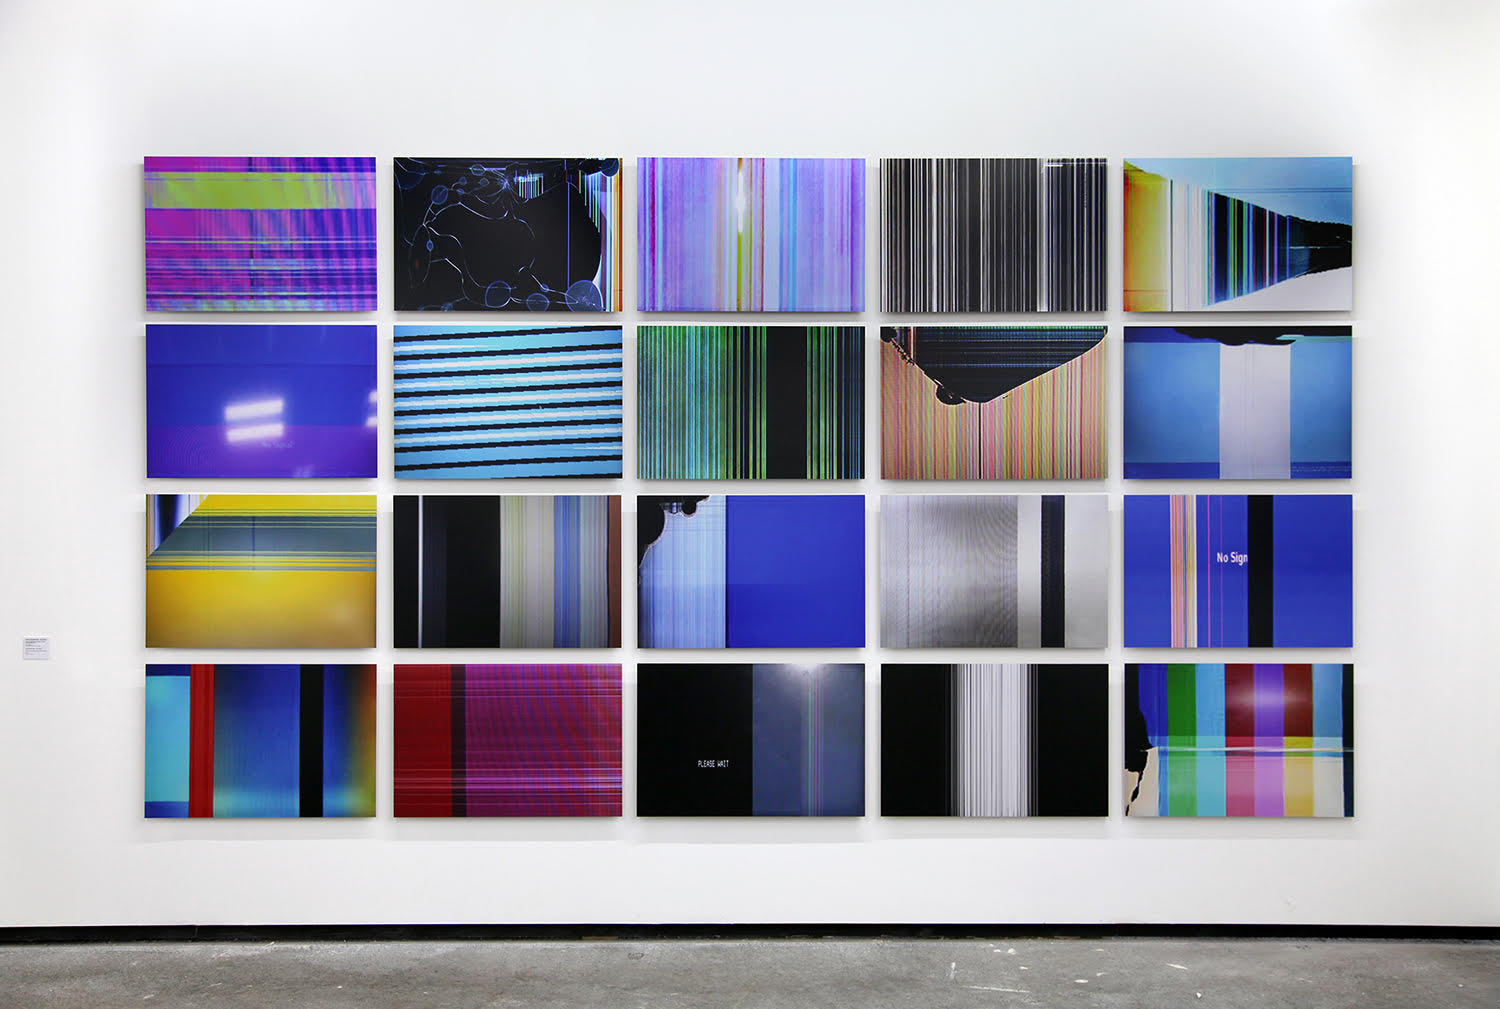 Broken Sets (Group 005) from Broken Sets (eBay),  2011 Installation view at Les Rencontres d'Arles, 2011 Courtesy the Artist and Les Rencontres d'Arles